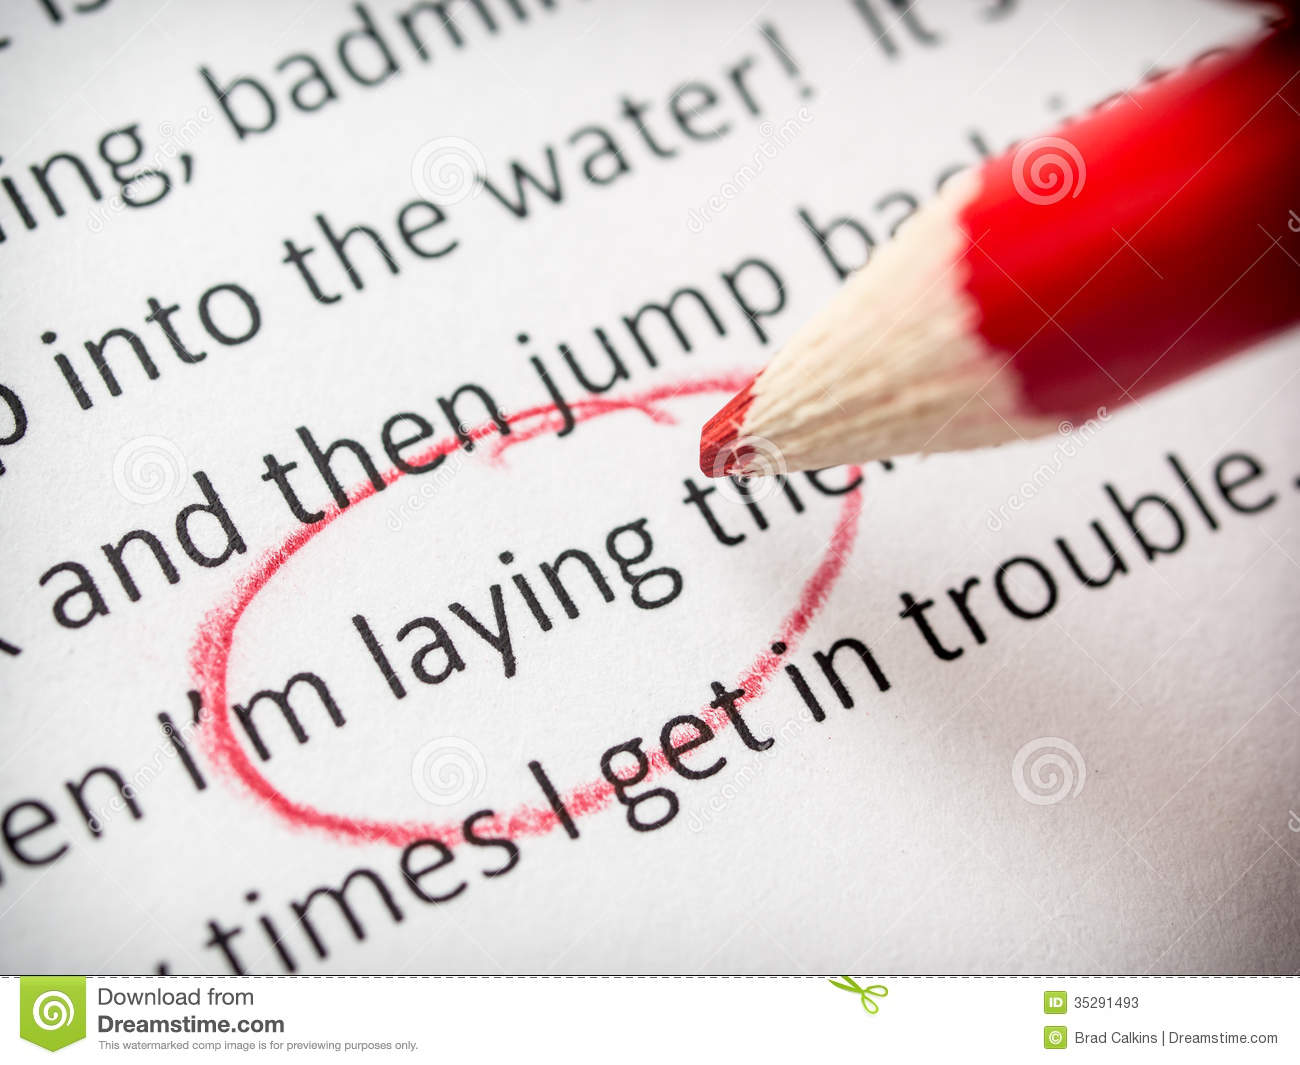 proofreading essay errors stock photos image  proofreading essay errors